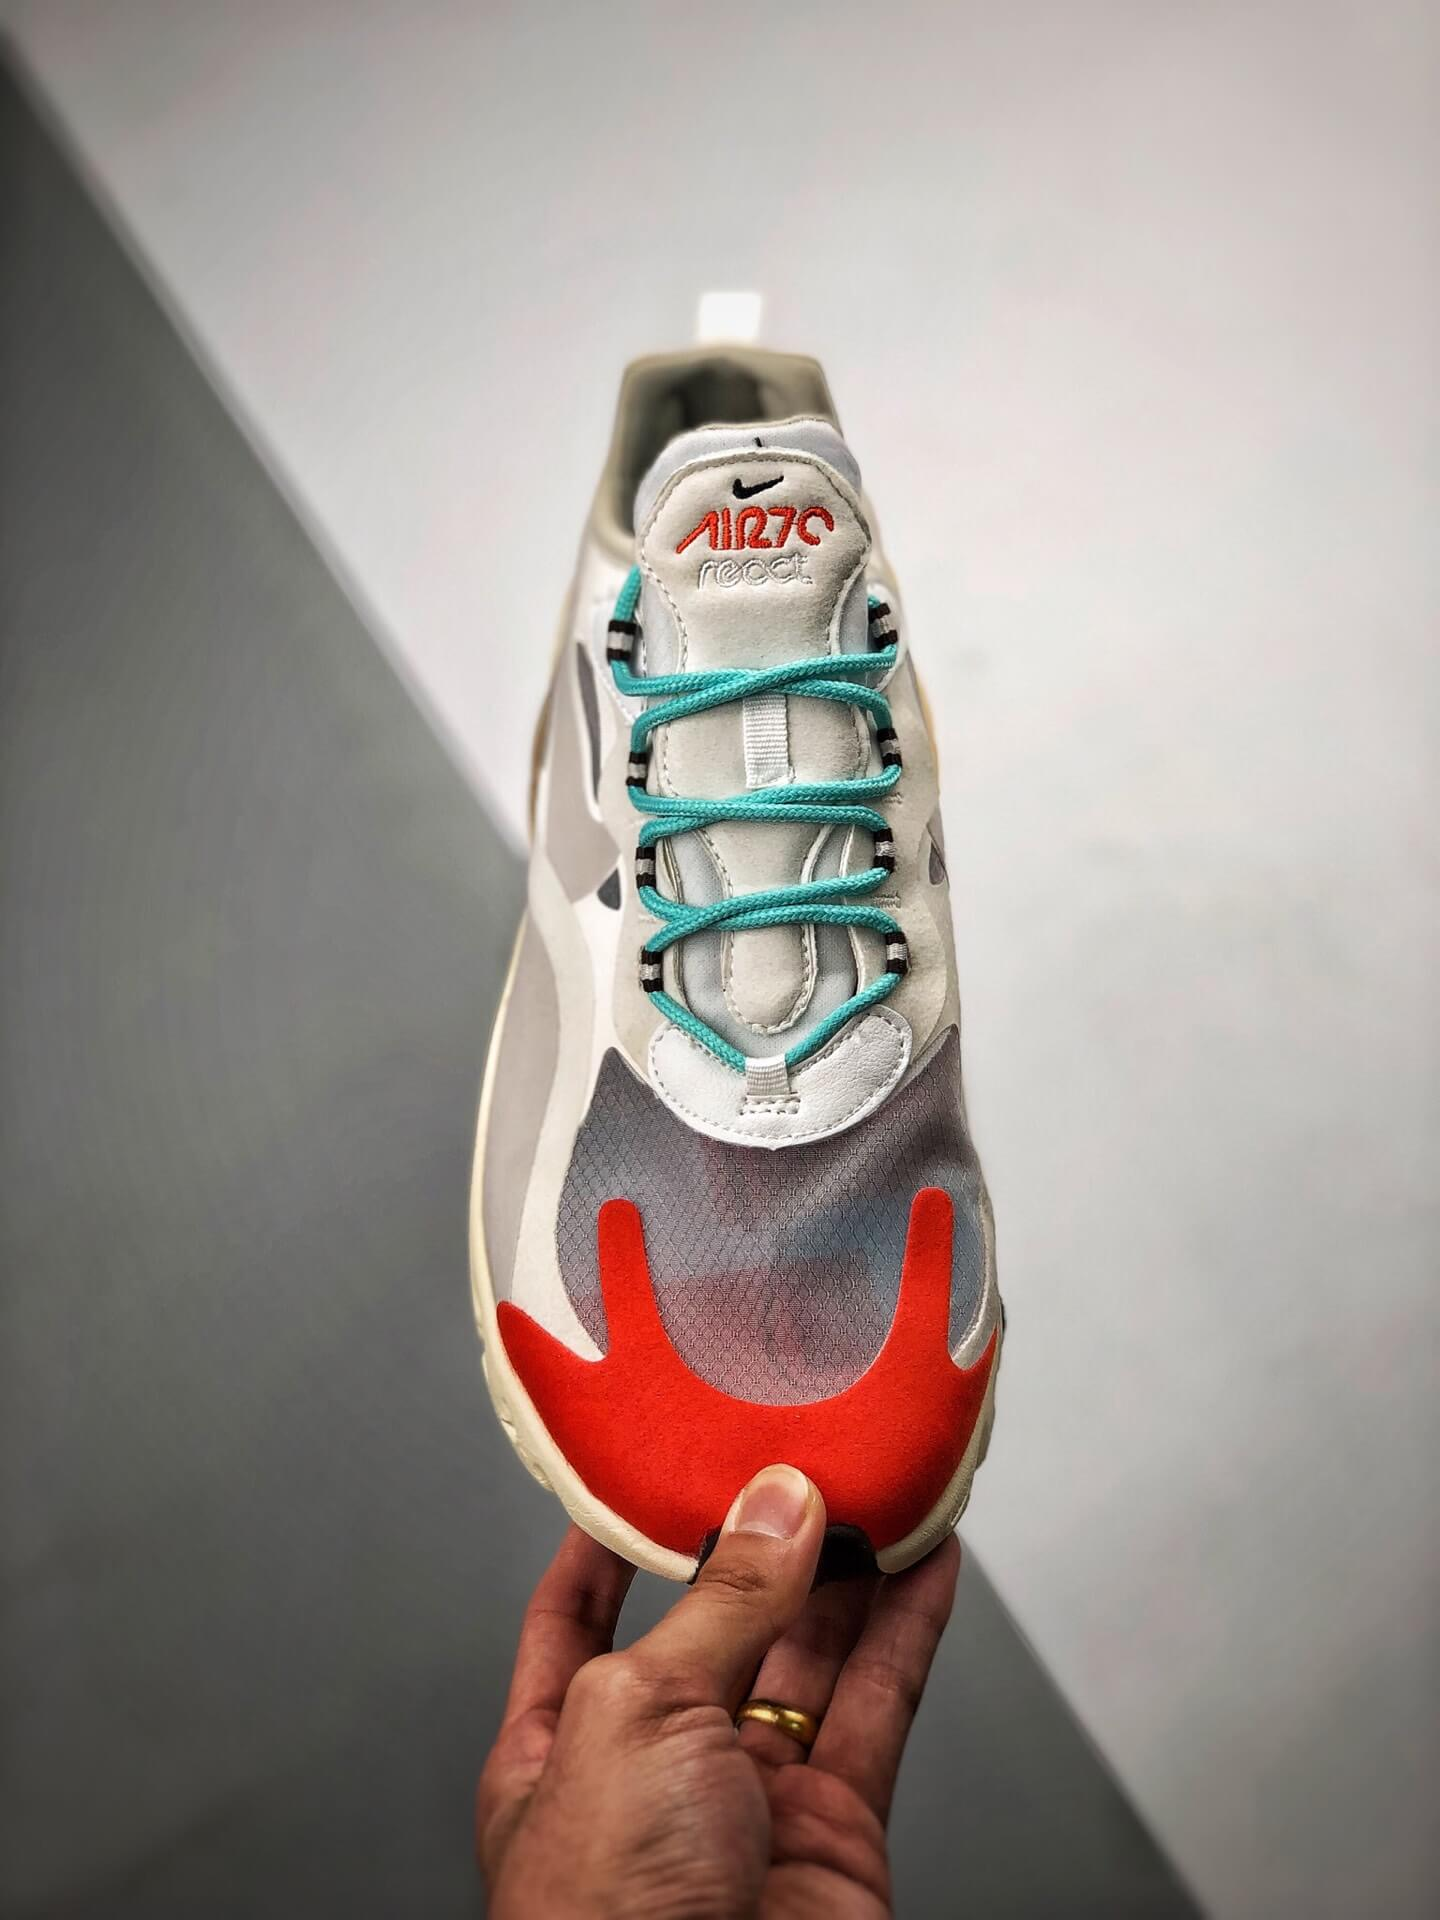 The Air Max 270 React Mid Century Art Lifestyle RepShoes 03